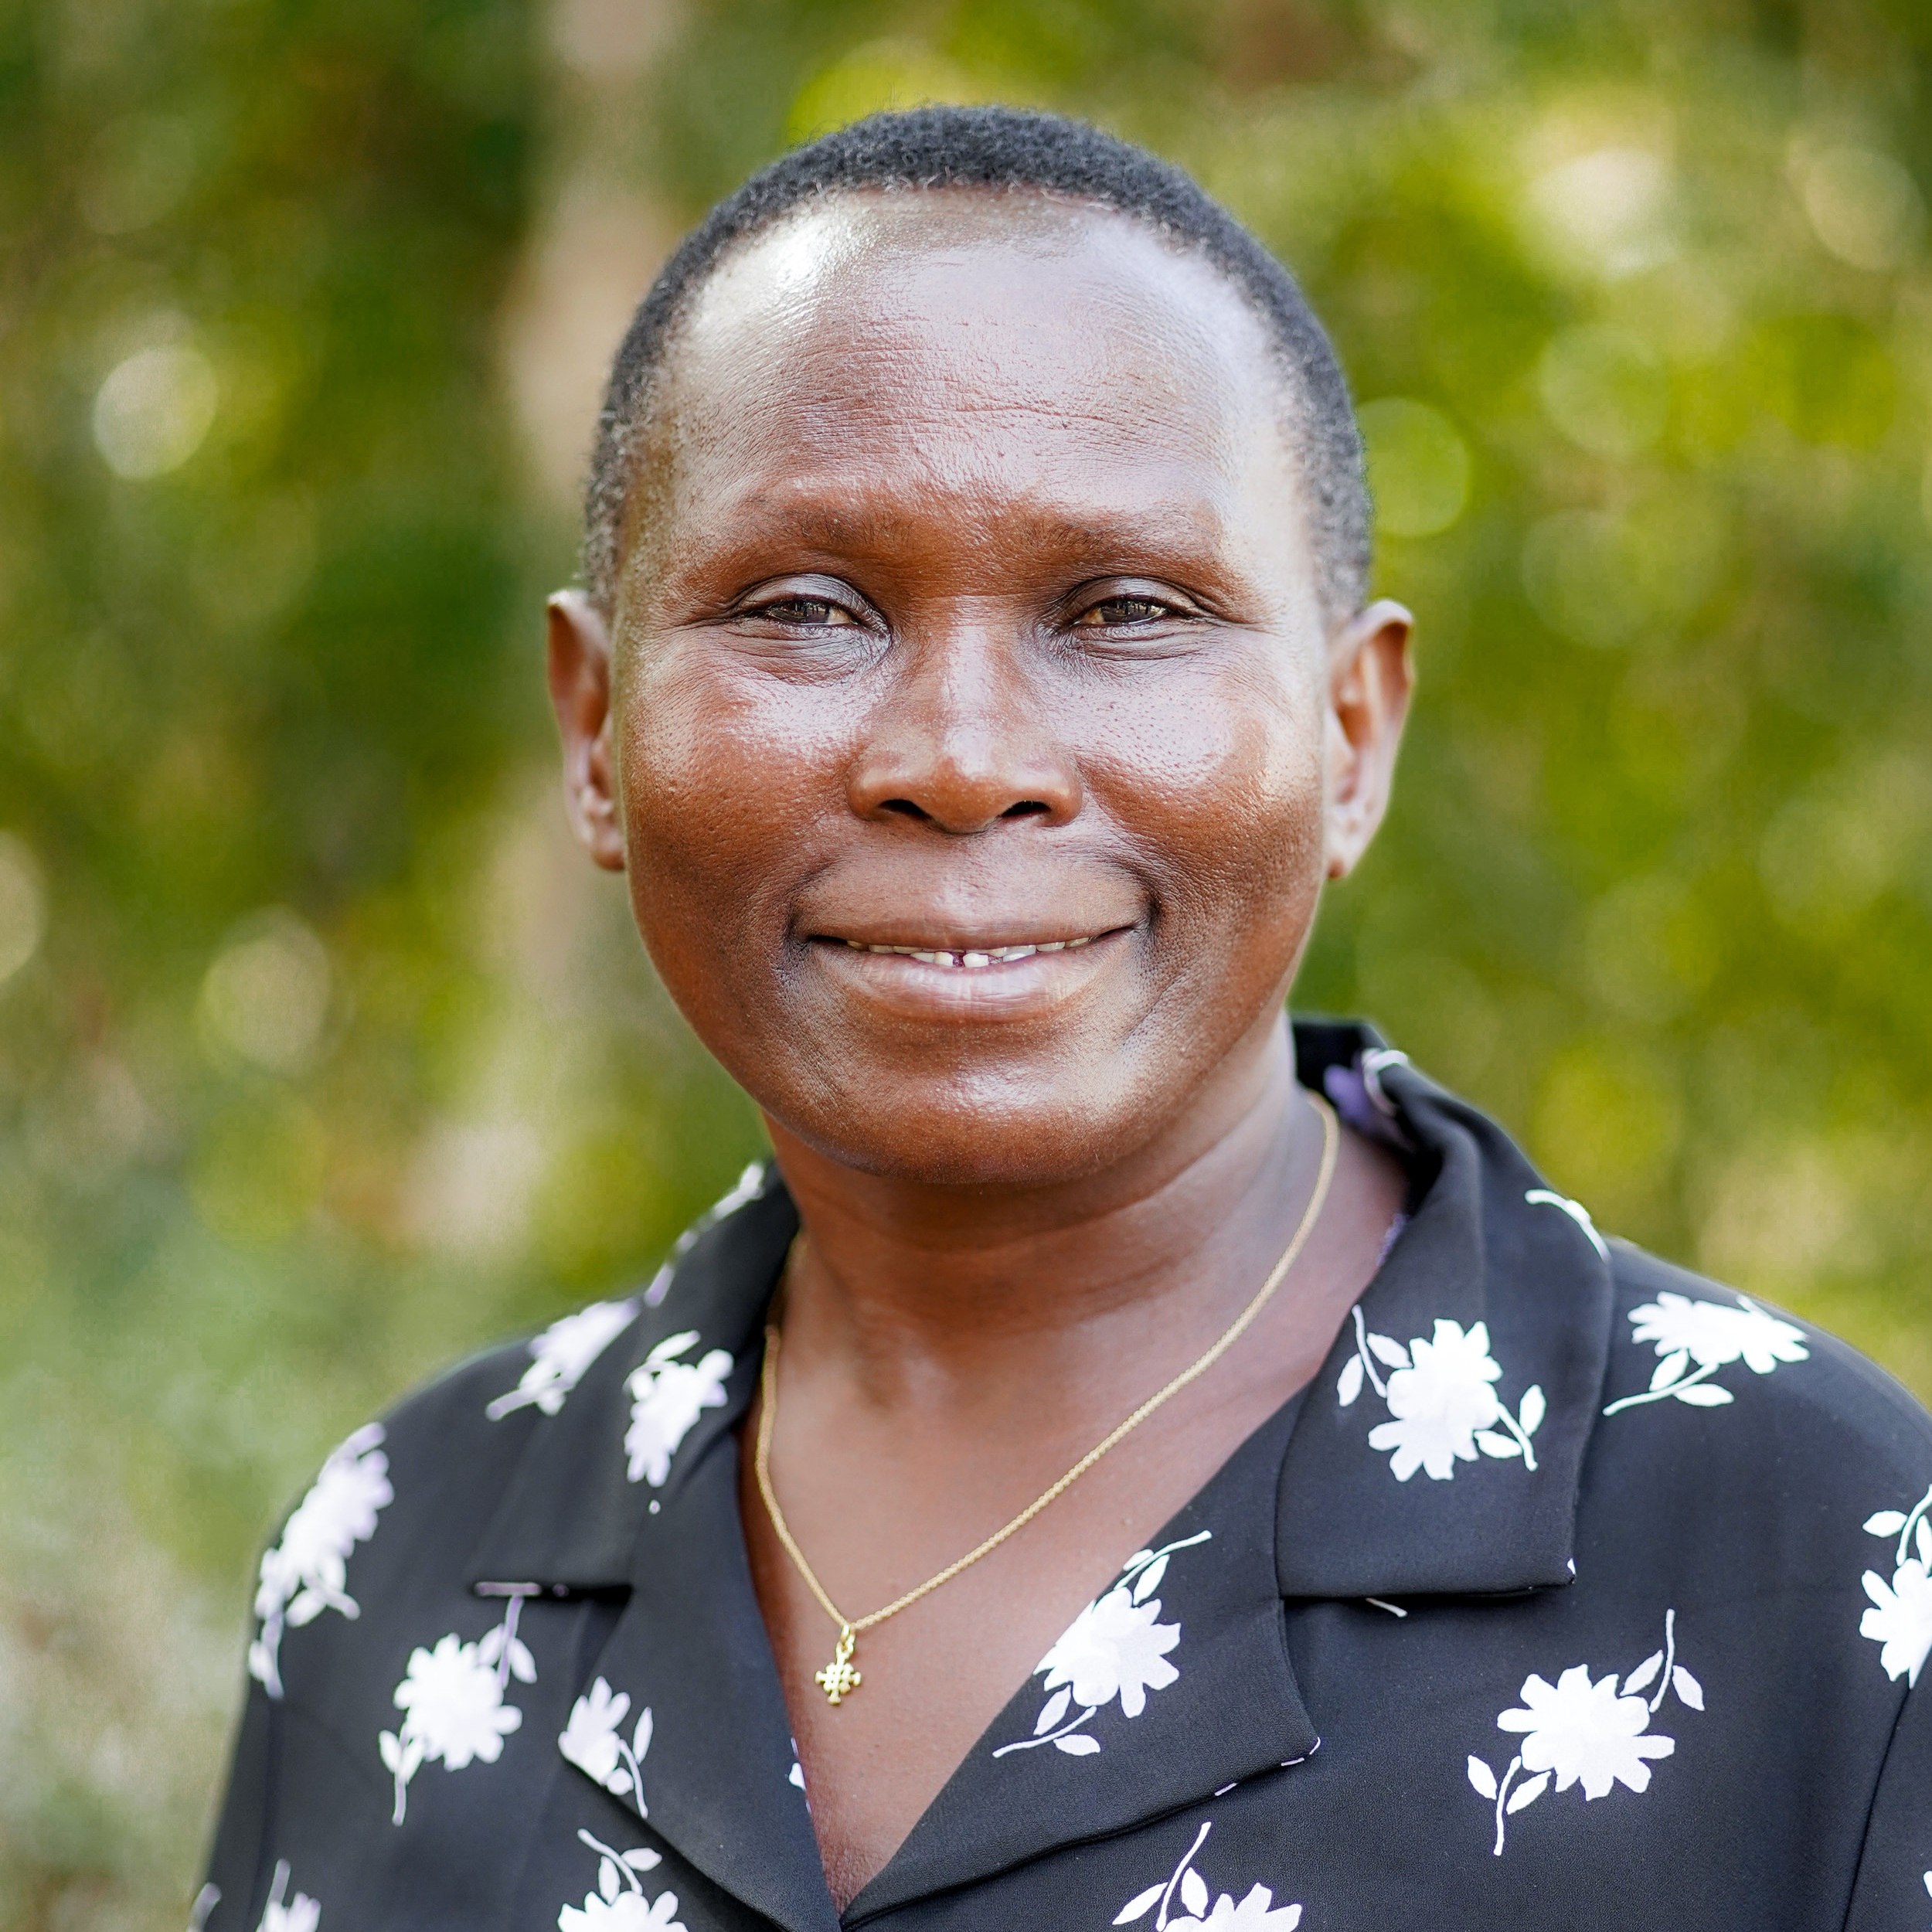 charity ampaireprogram assistant, holistic wellness support - Charity joined Akola in 2010 after working as a housewife for 20 years and supporting her family financially working in small-scale agricultural activities. After being a jewelry producer for two years, she now organizes and leads weekly fellowship groups with a peer leaders. Charity is a wife and a proud mother of four sons. She attaches great value in education and this motivated her to start a village school.